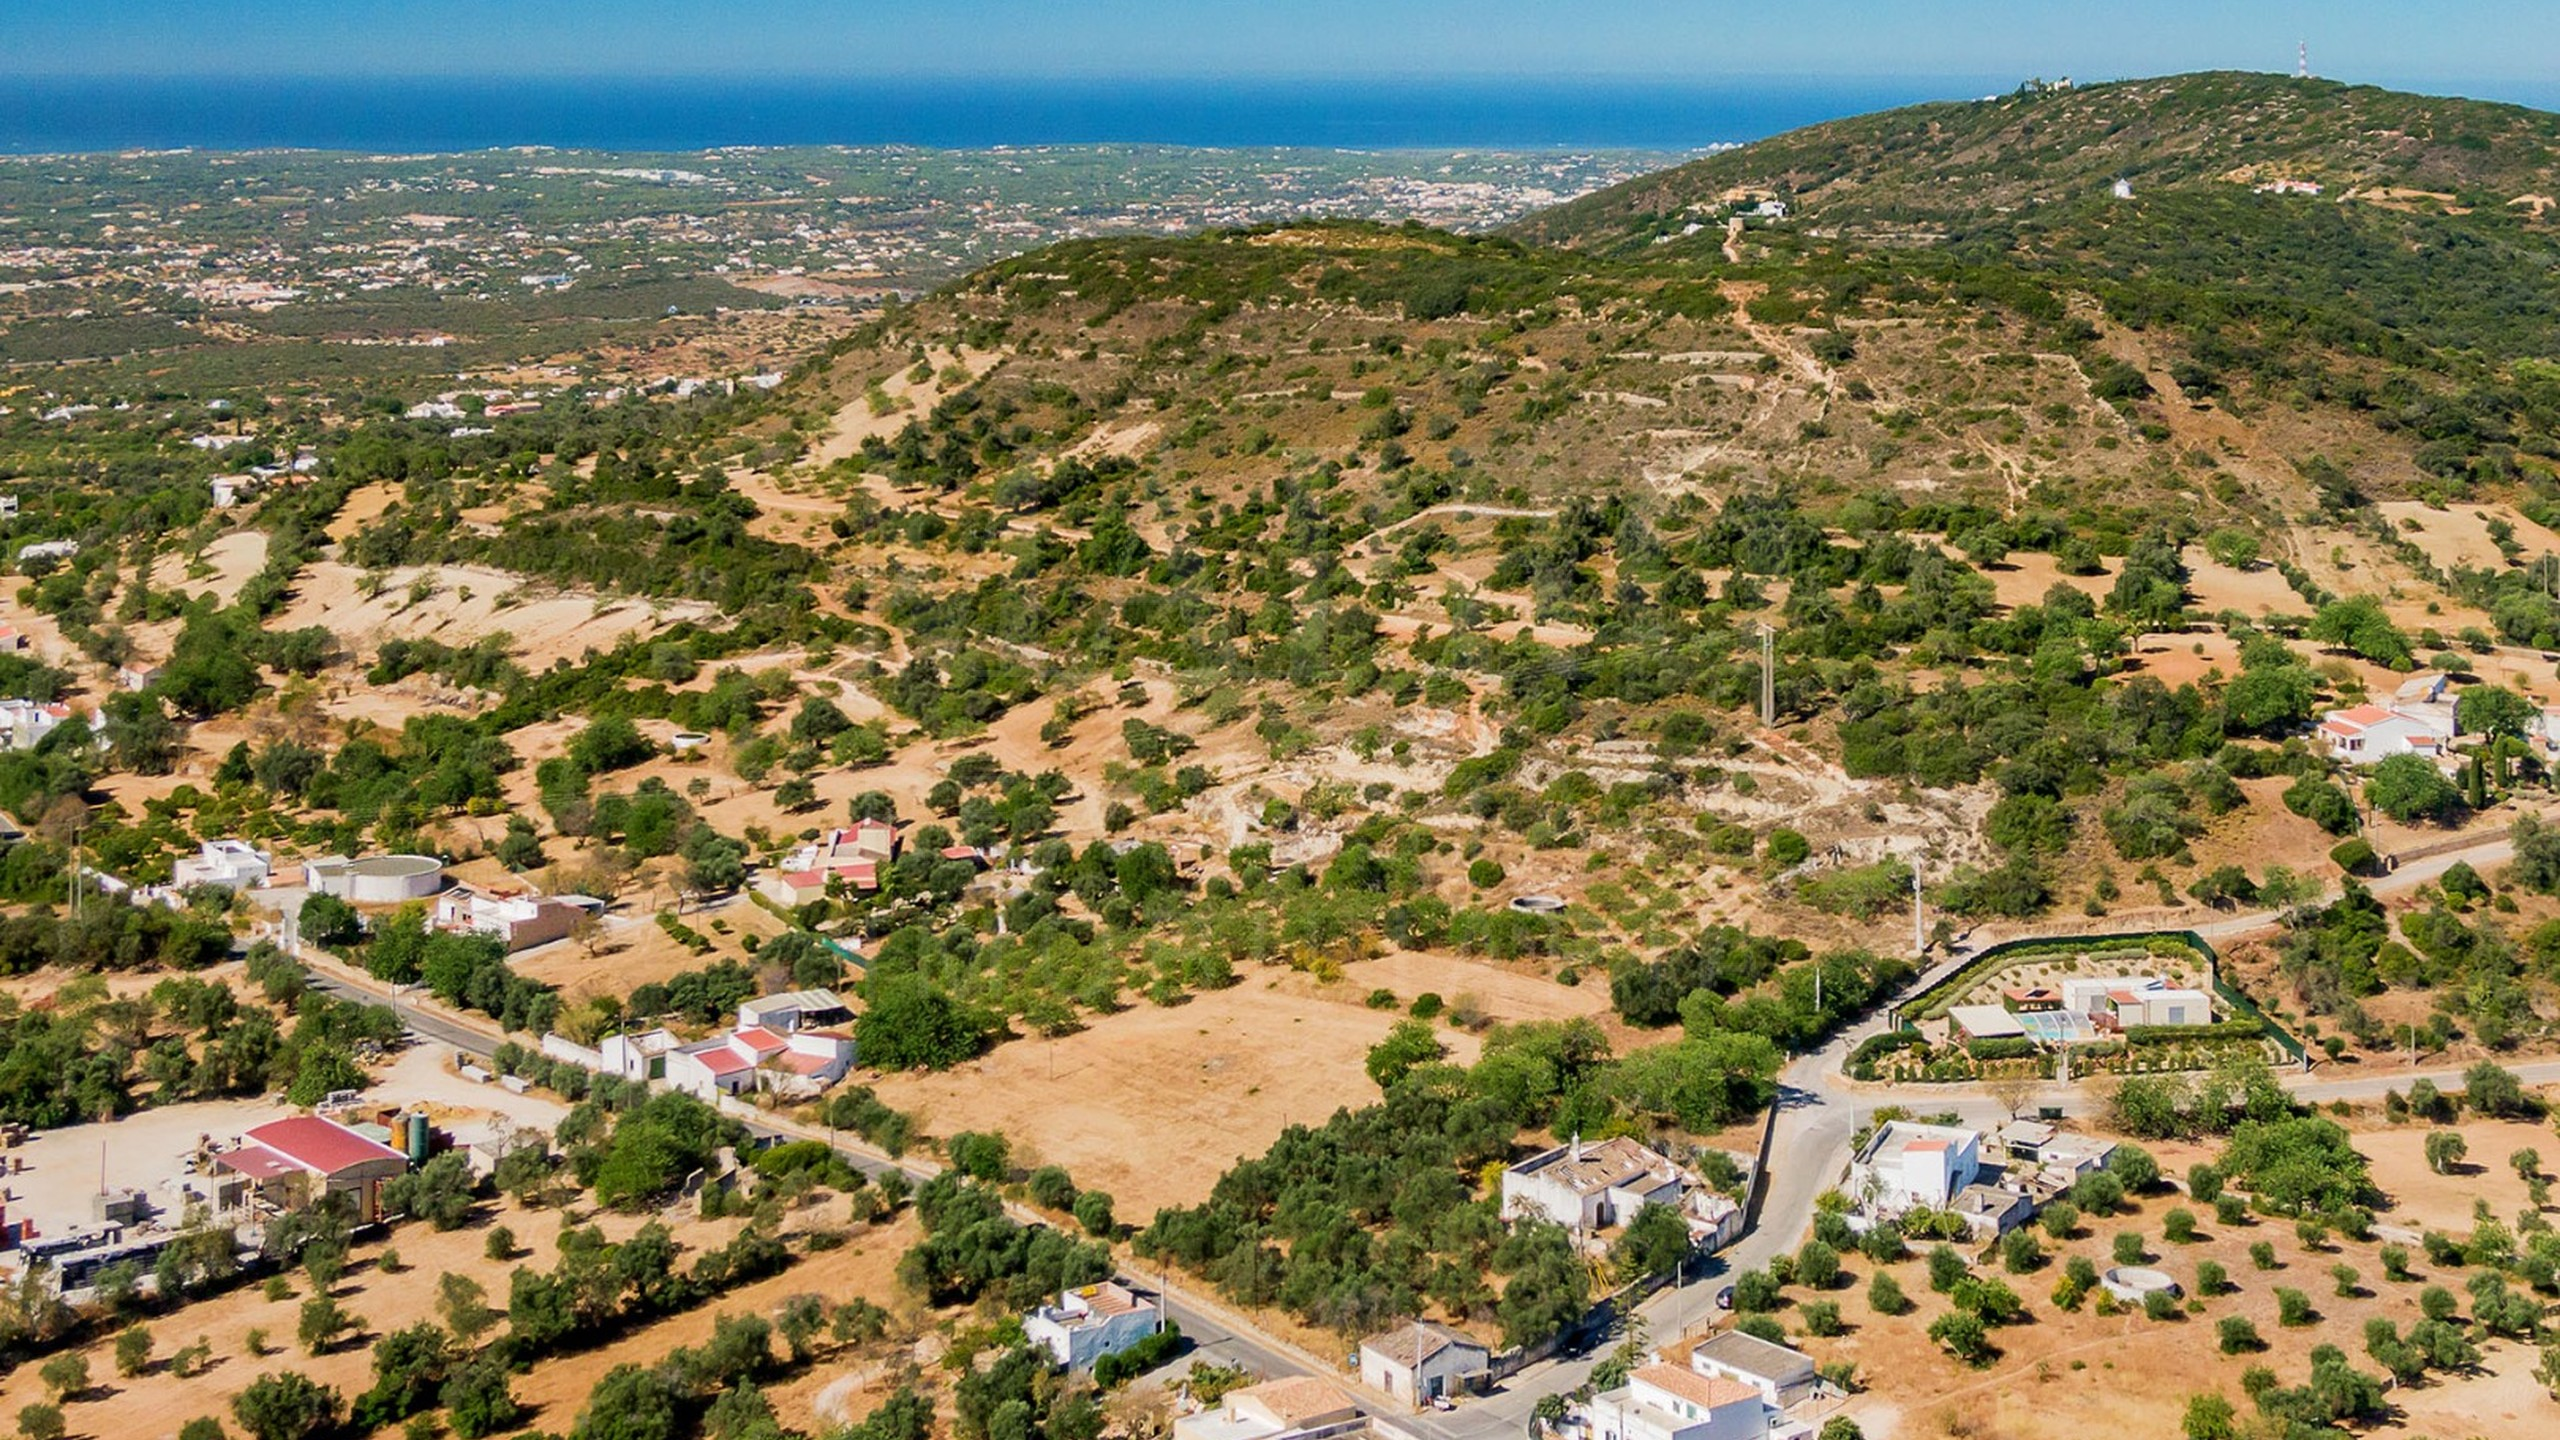 Building plot in Algarve for sale